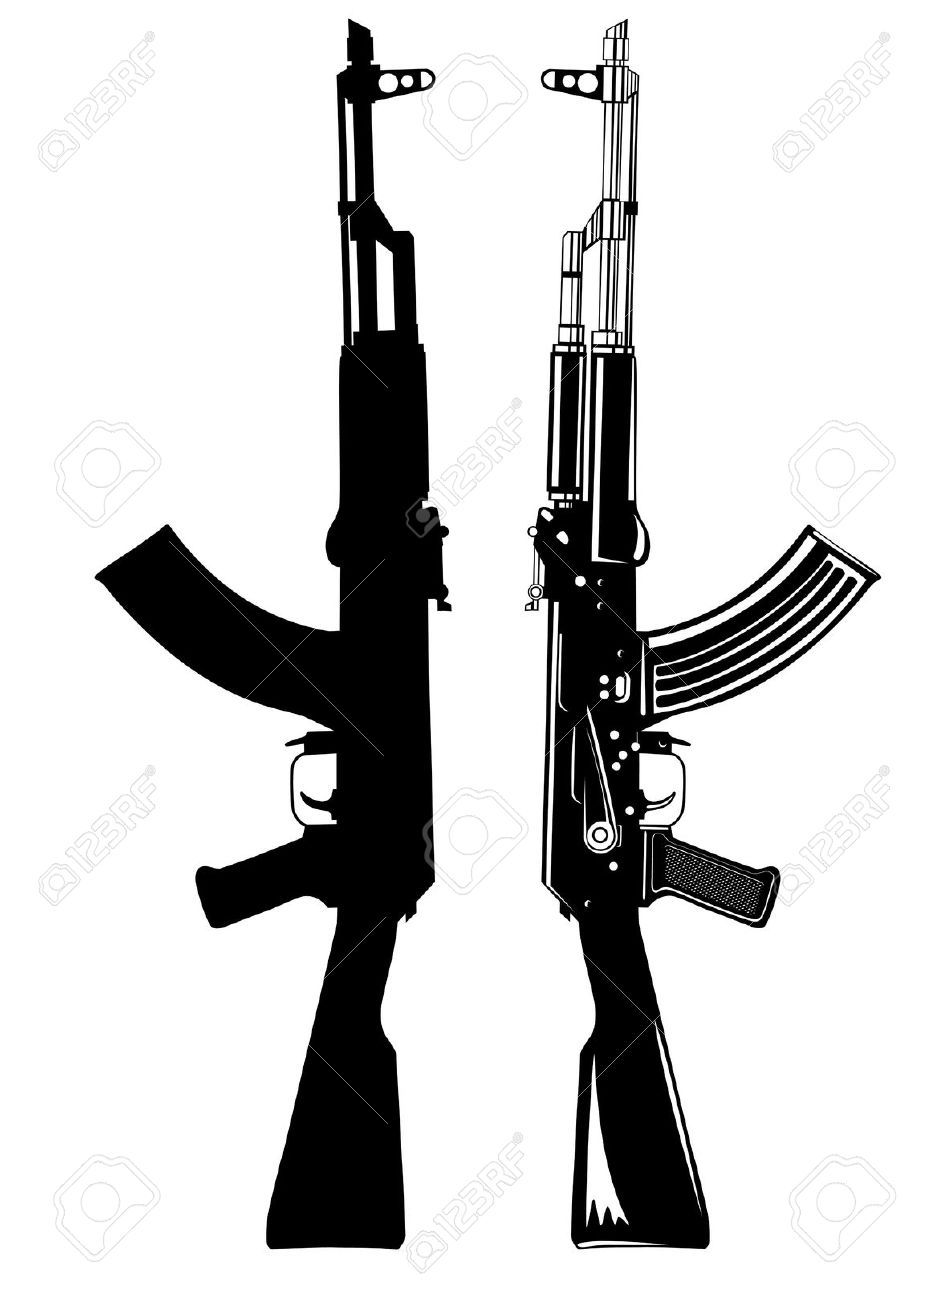 12889382 image of the automatic machine ak 47 stock vector for Ak tattoo gun